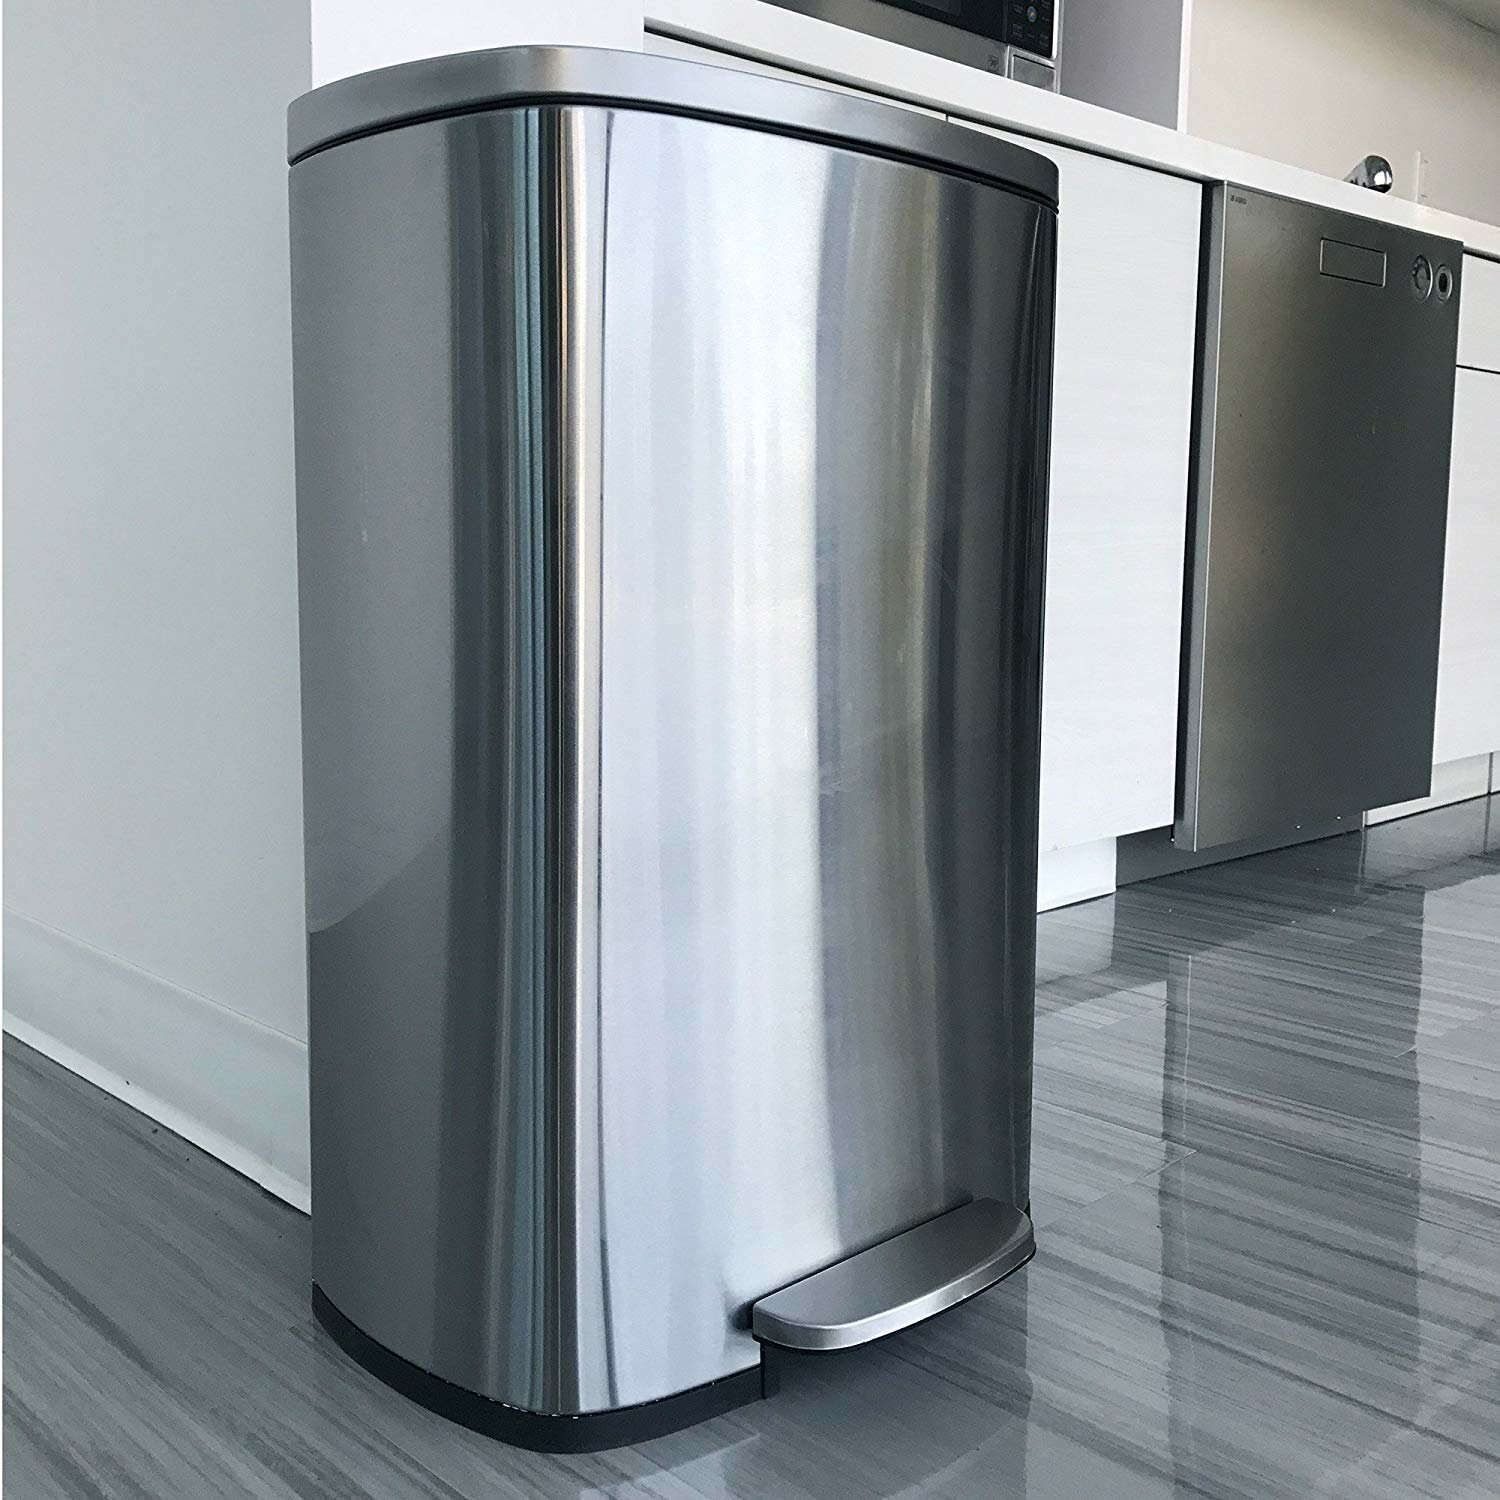 Itouchless Softstep Step Trash Can Rose Gold 50 Liter Foot Pedal Garbage Bin For Office And Kitchen 13 Gallon Stainless Steel With Deodorizer Filter System Inner Bucket Trash Recycling Compost